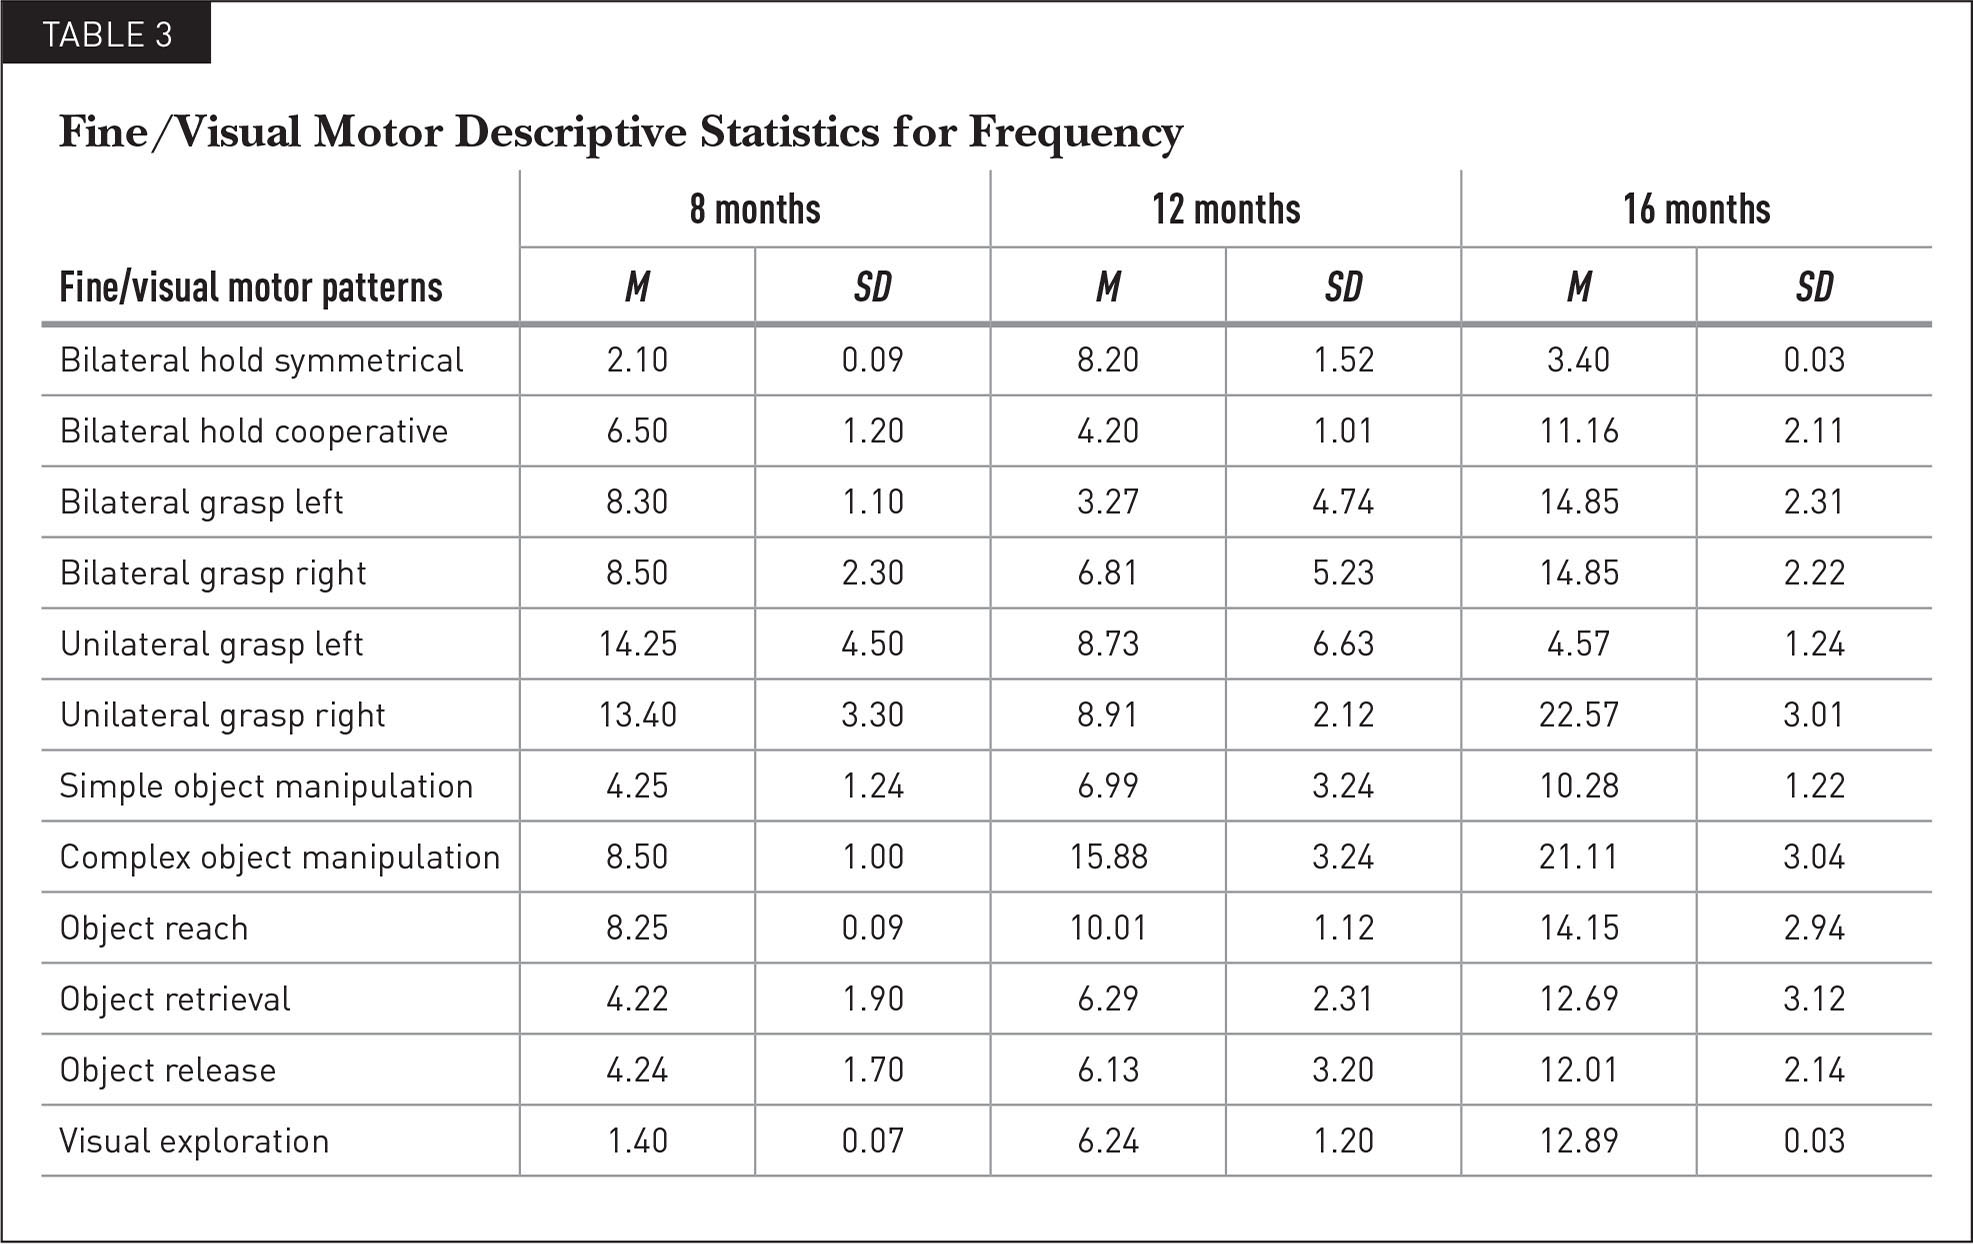 Fine/Visual Motor Descriptive Statistics for Frequency